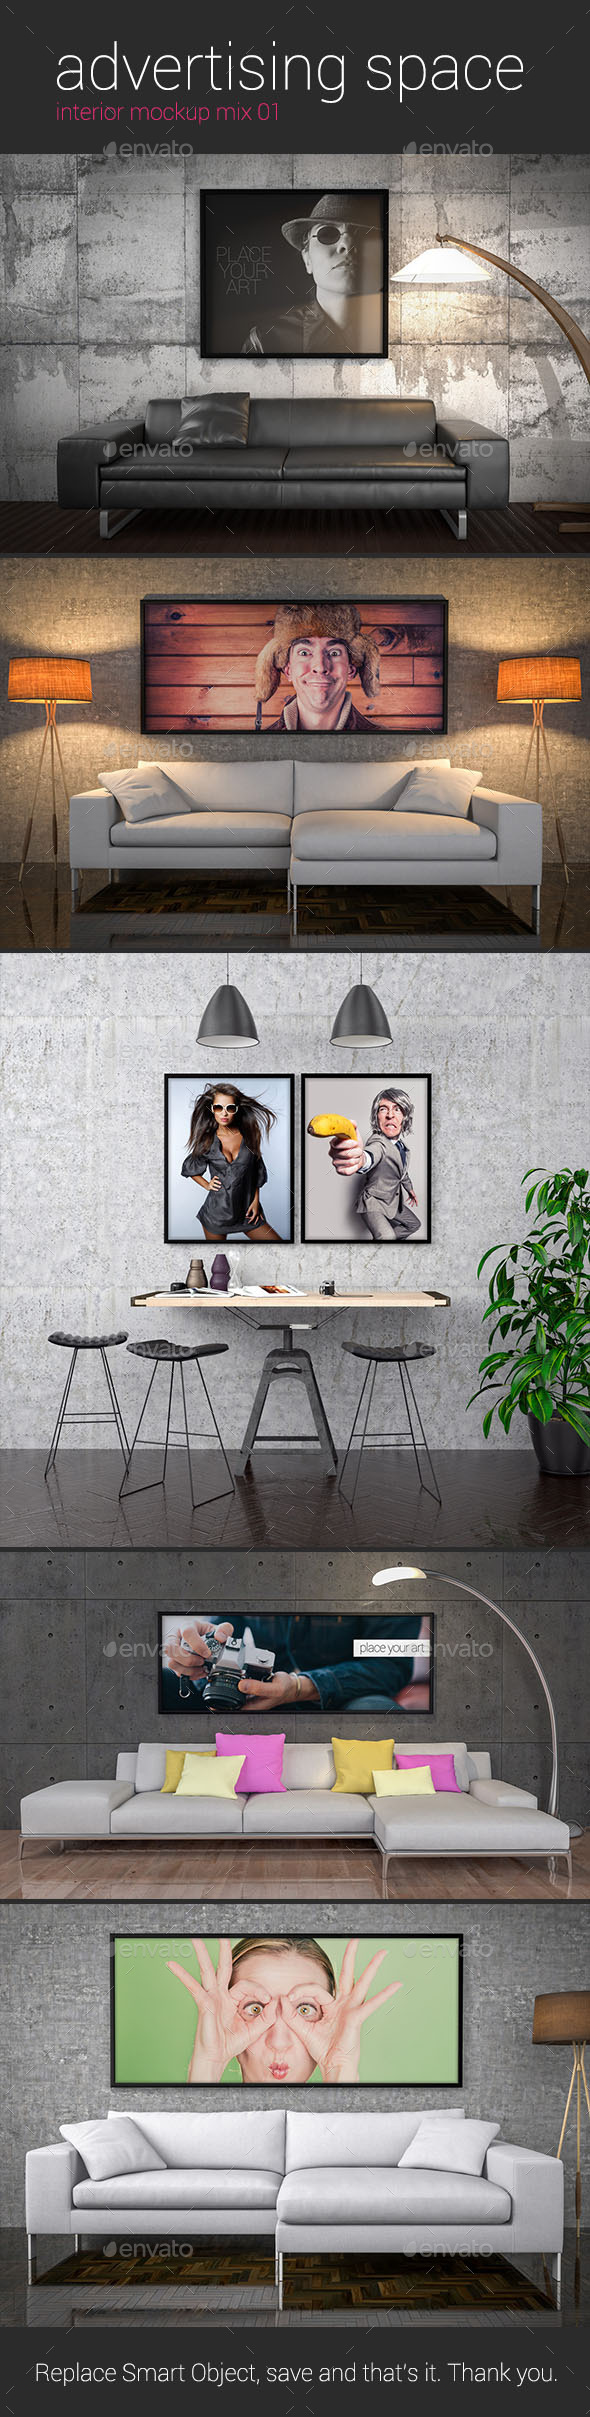 Advertising Space Interior Mockup Mix 01 - Posters Print